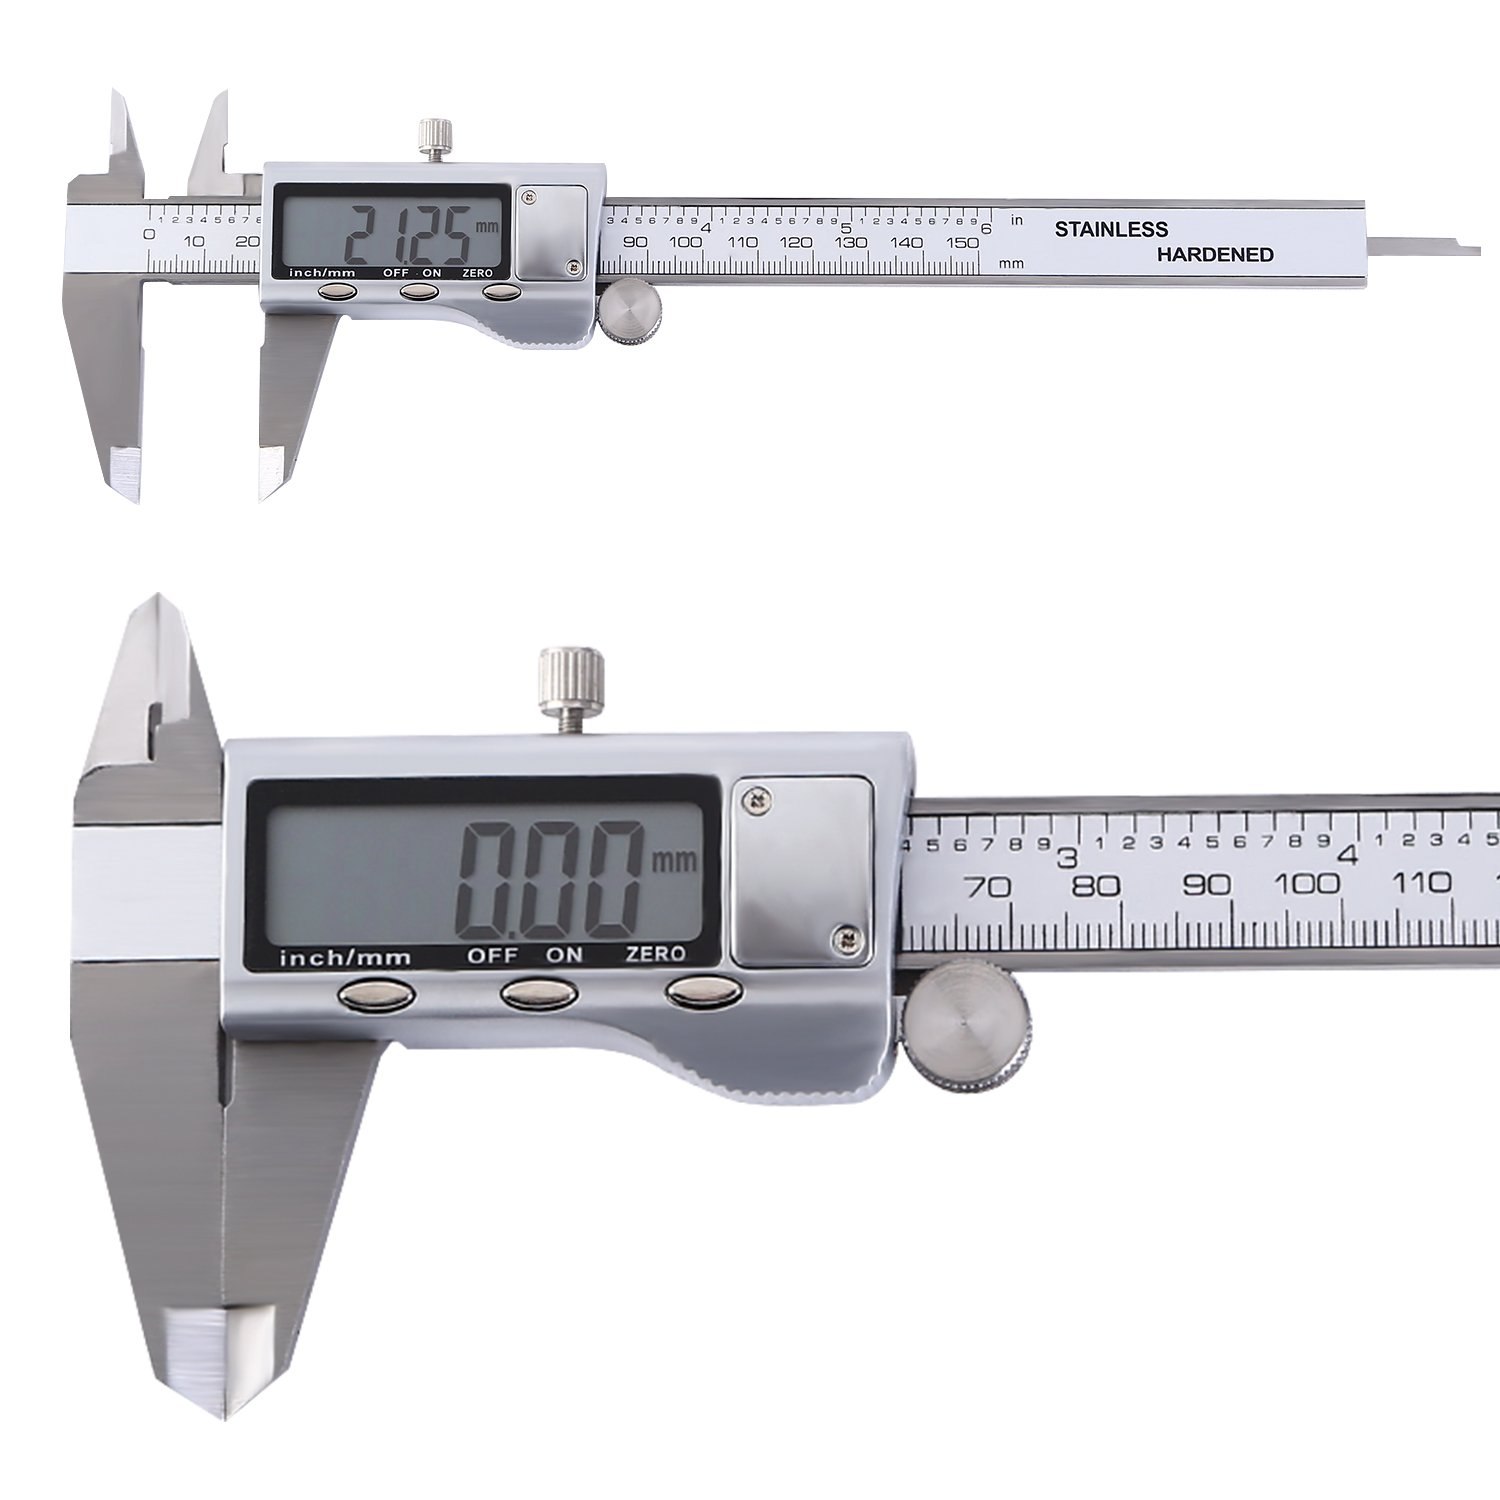 OCGIG Digital Caliper Measuring Tool Stainless Steel Vernier Caliper 0 - 6 Inches 150mm with Large Clear LCD Screen Inch/Millimeter Conversion